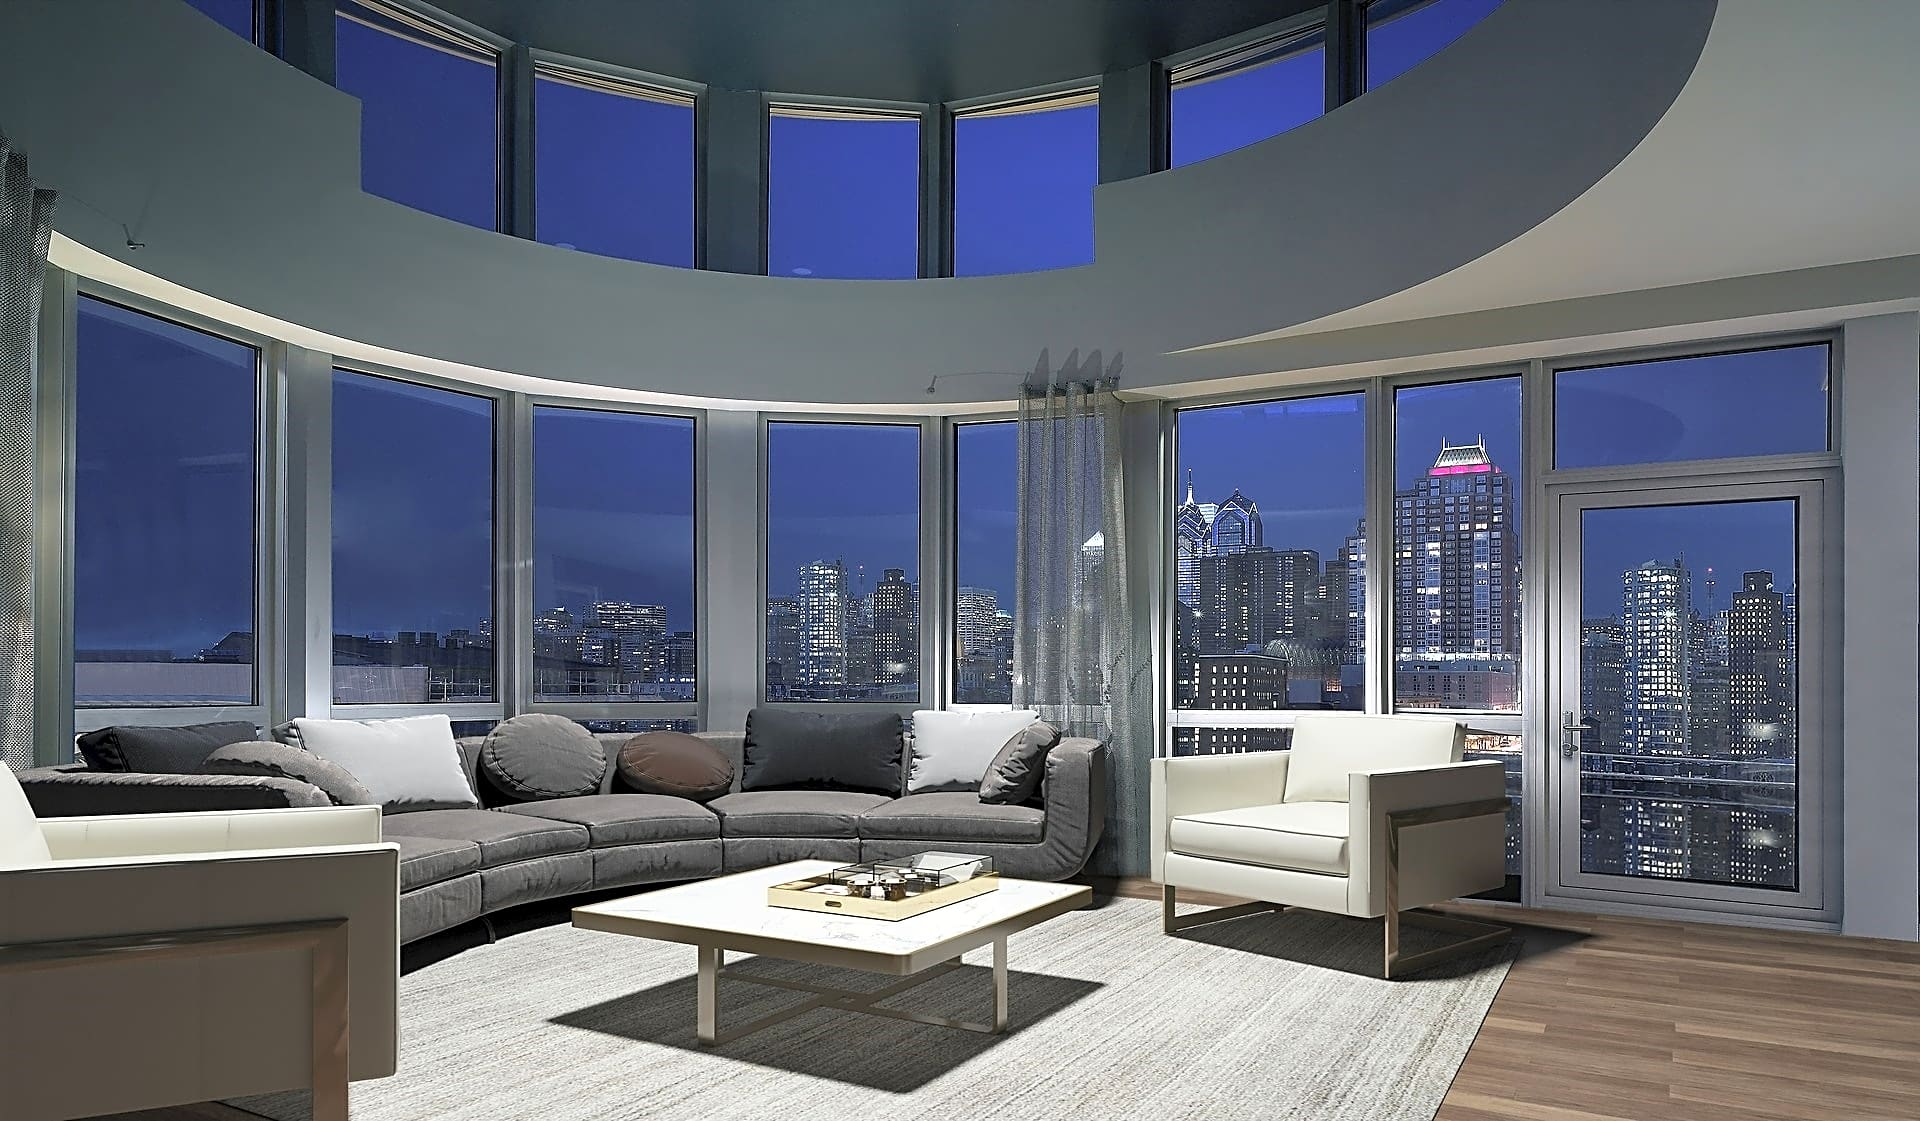 Loft-style homes with amazing city views